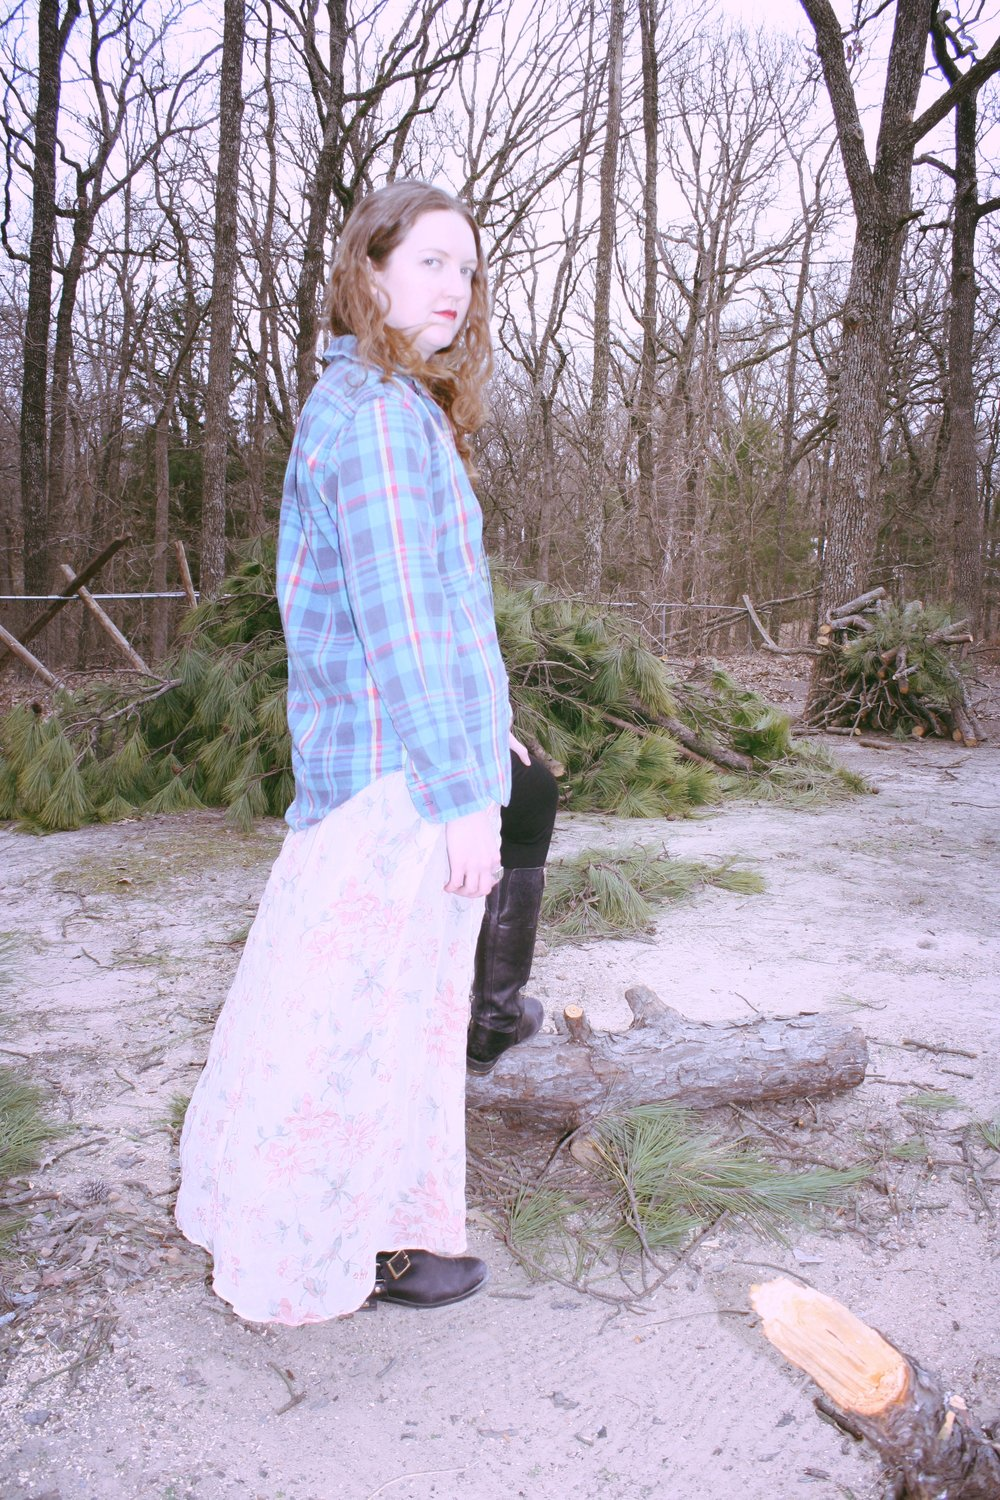 Mad for Plaid Winter Plaid Outfits Vintage Green Plaid Button Down Reformation maxi dress Vince Camuto Boots.JPG